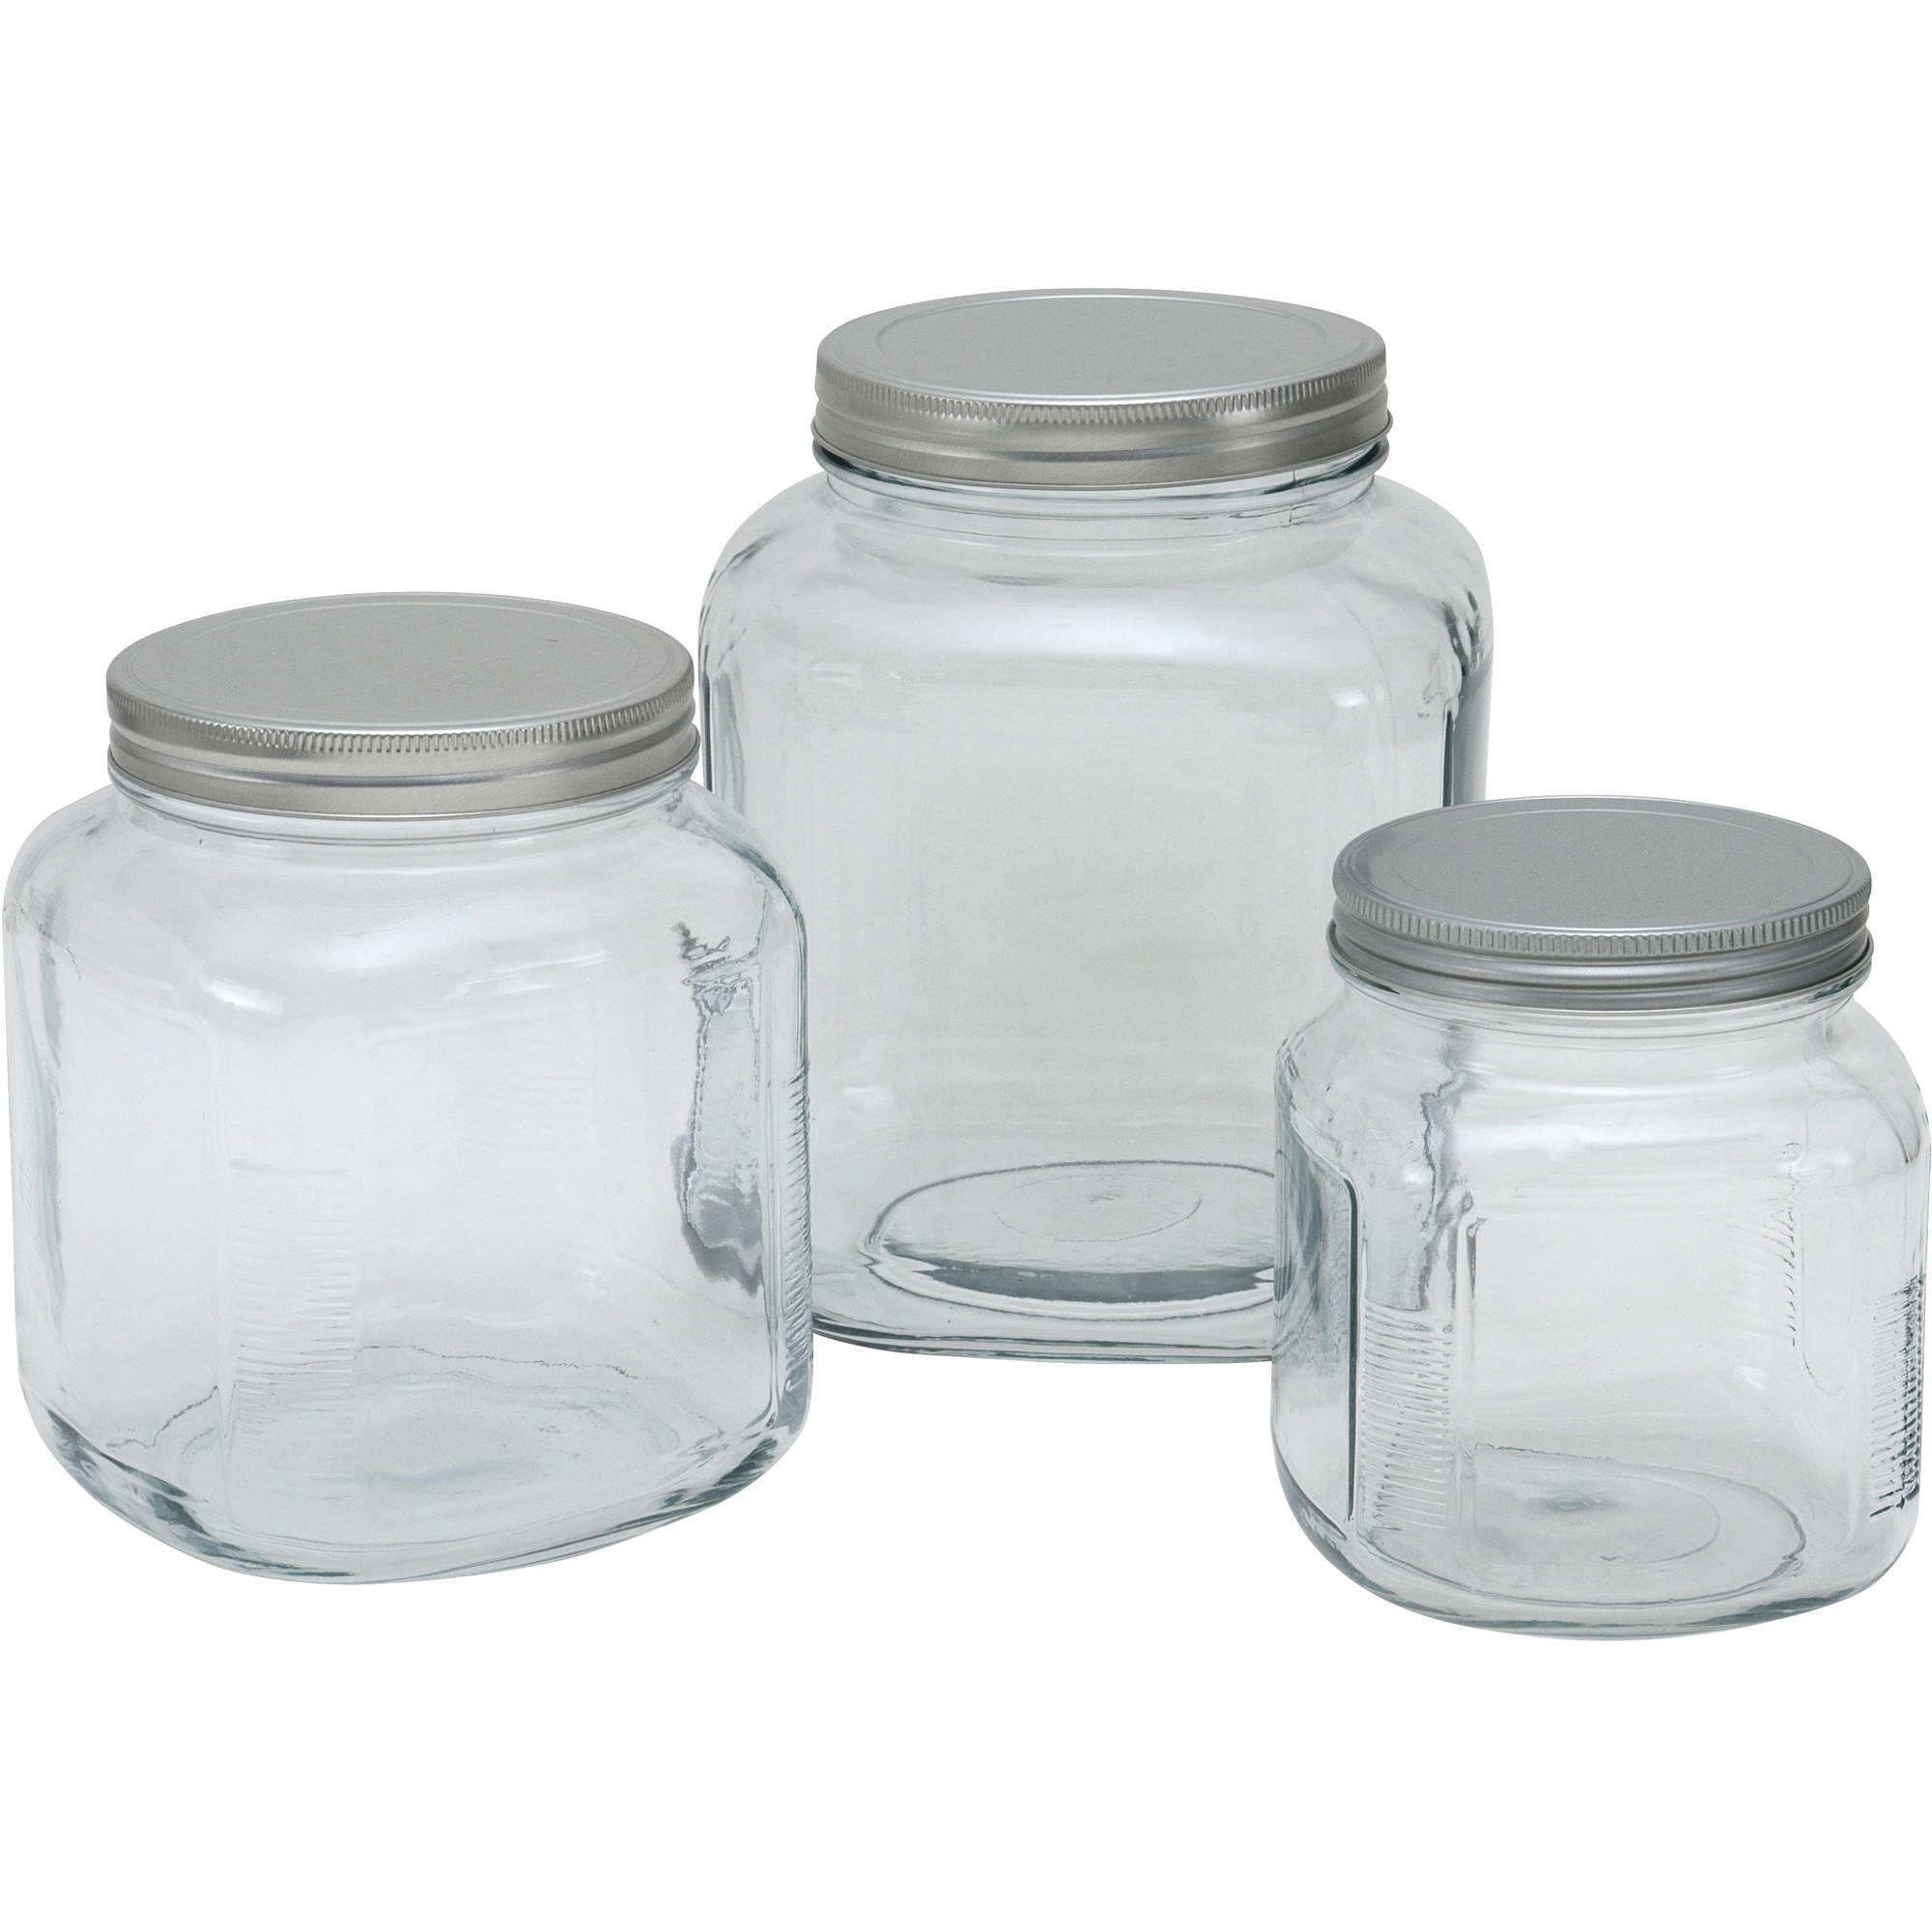 Anchor Hocking Cracker Jar With Lid